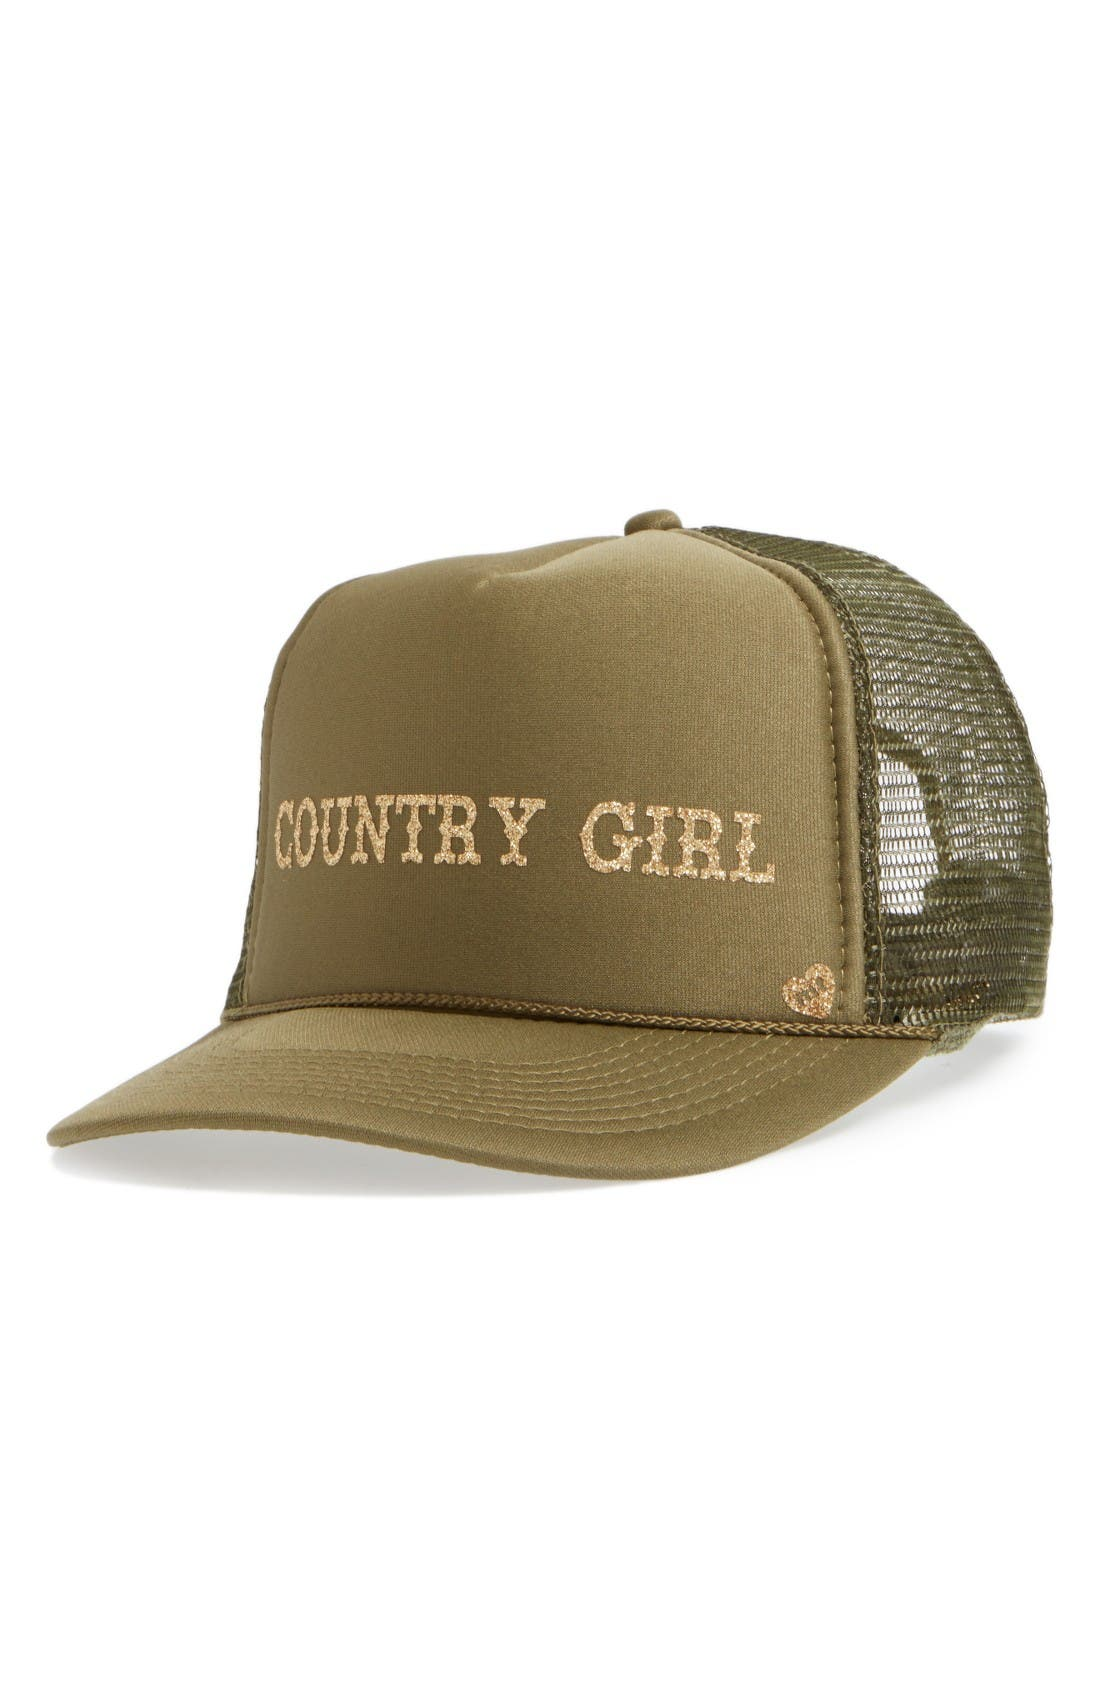 Alternate Image 1 Selected - Mother Trucker Hats Country Girl Trucker Hat